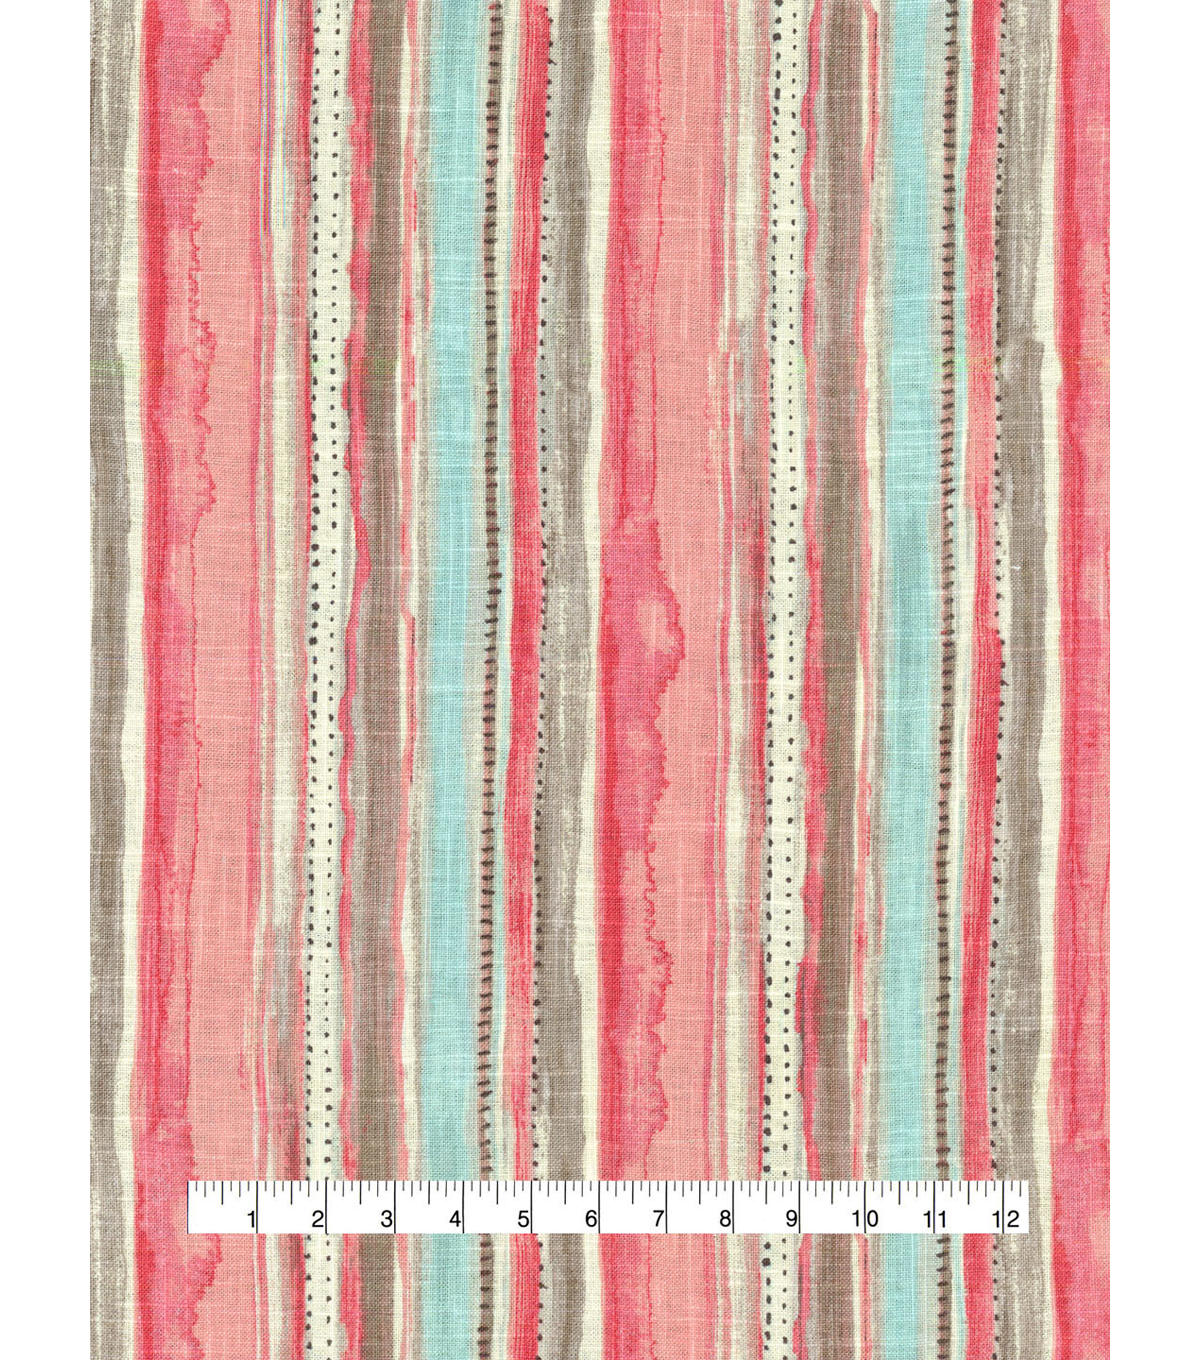 Dena Designs Multi-Purpose Decor Fabric 54\u0022-Splash Zone Bellini